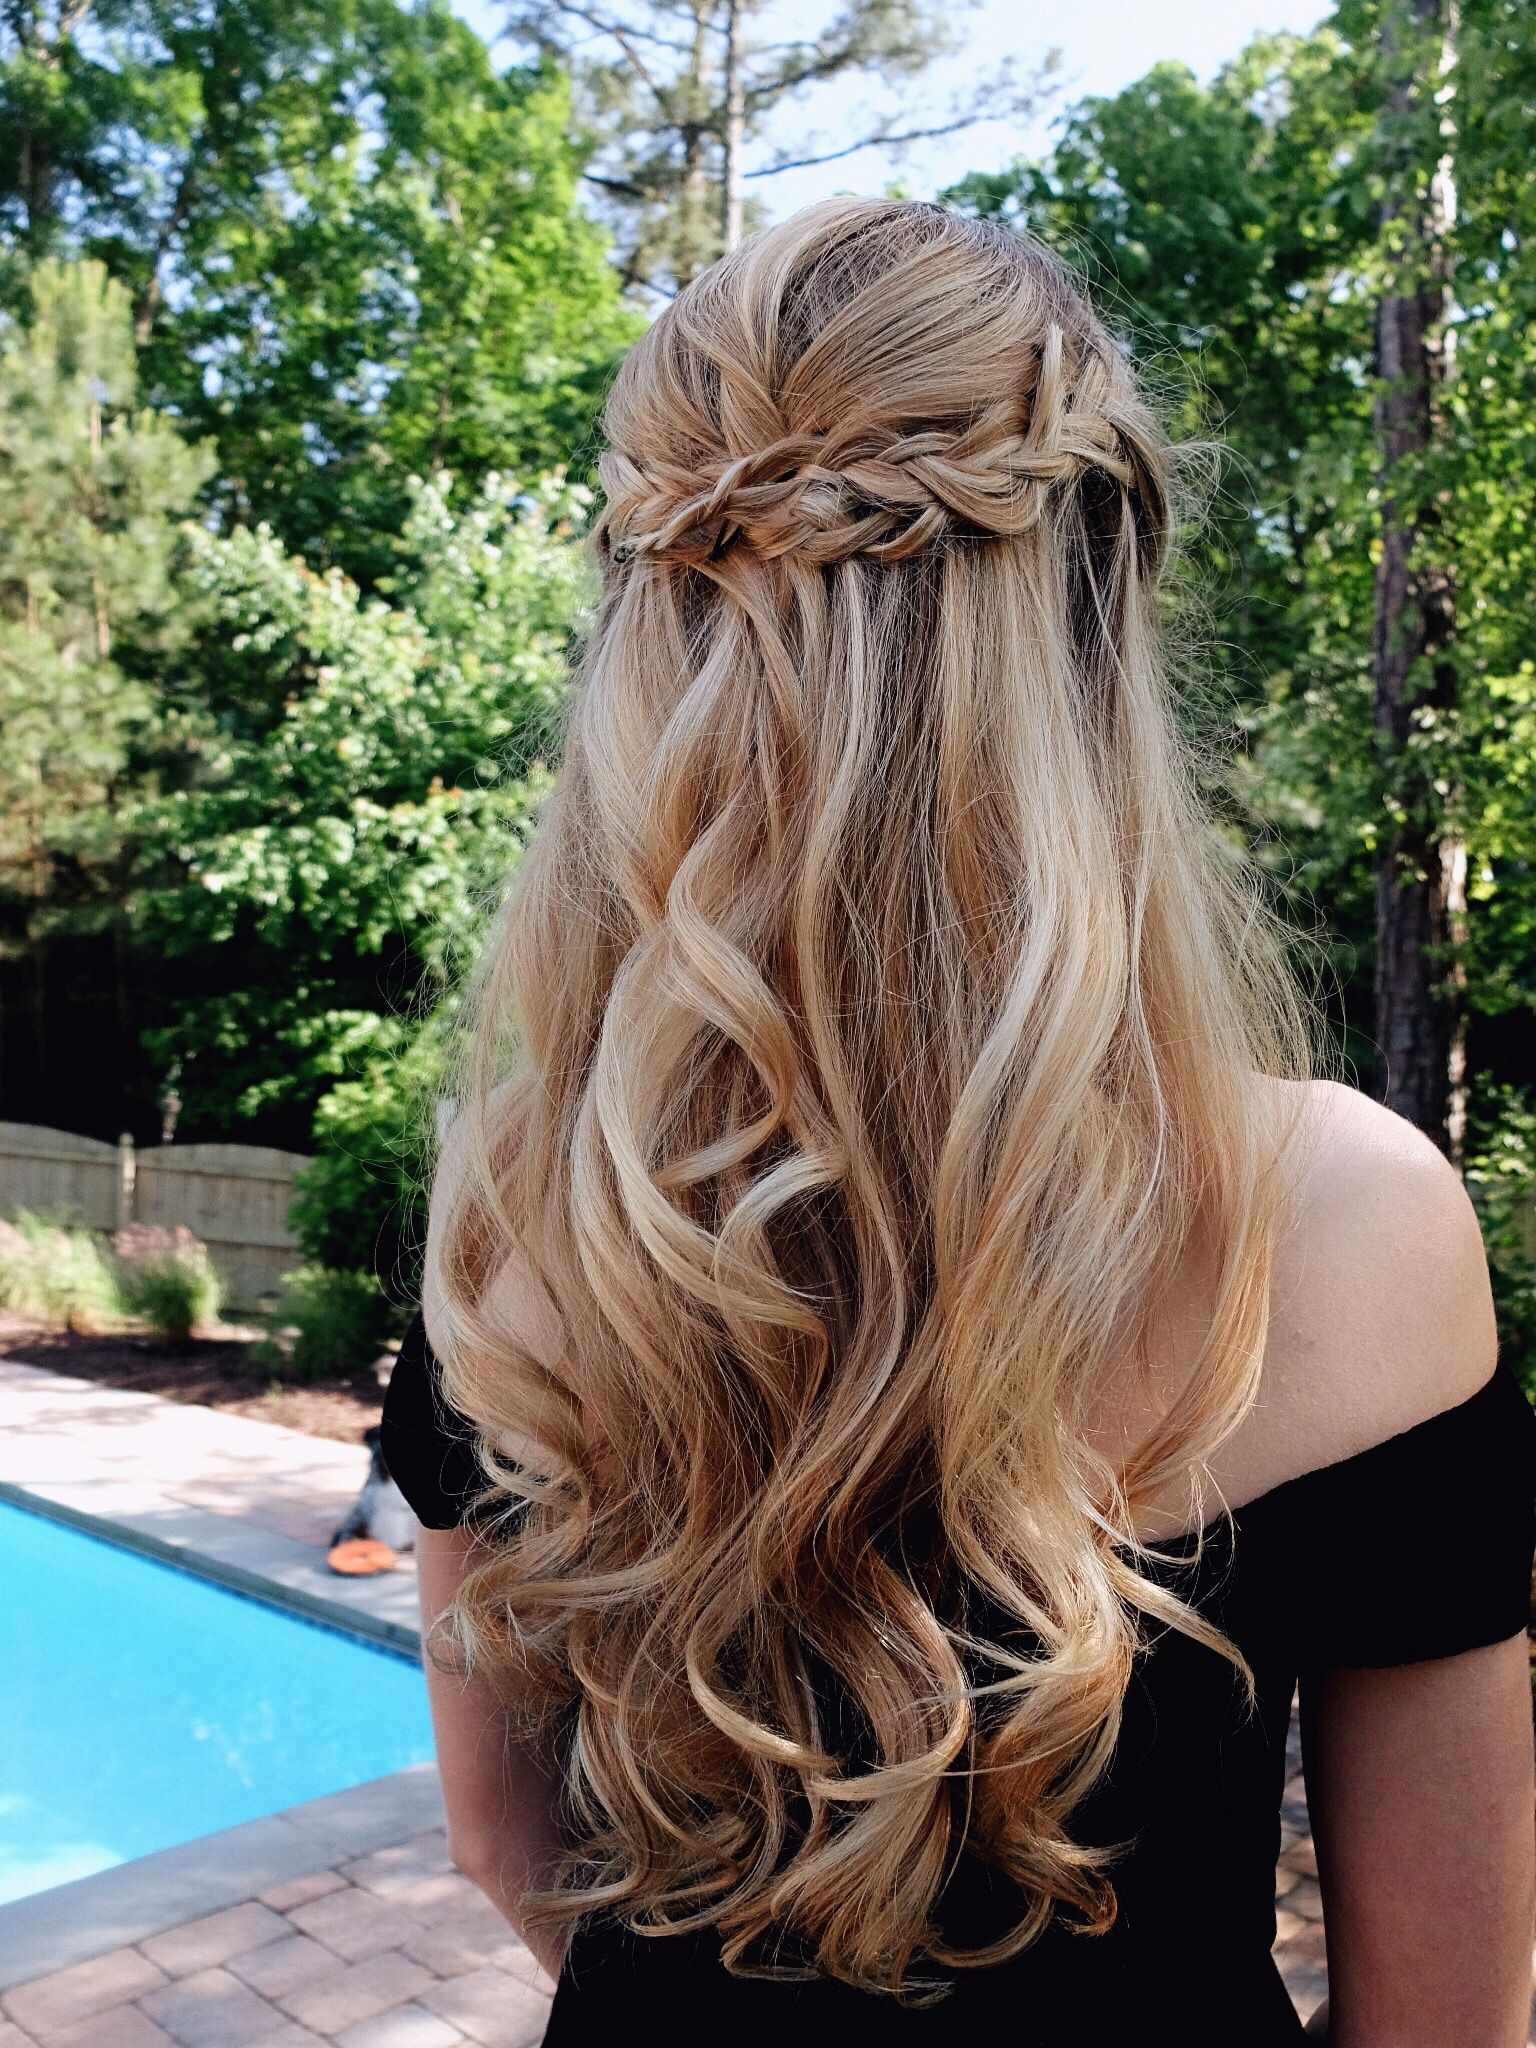 Beautiful Prom Hair Prom Promhair Braid Curls Prom